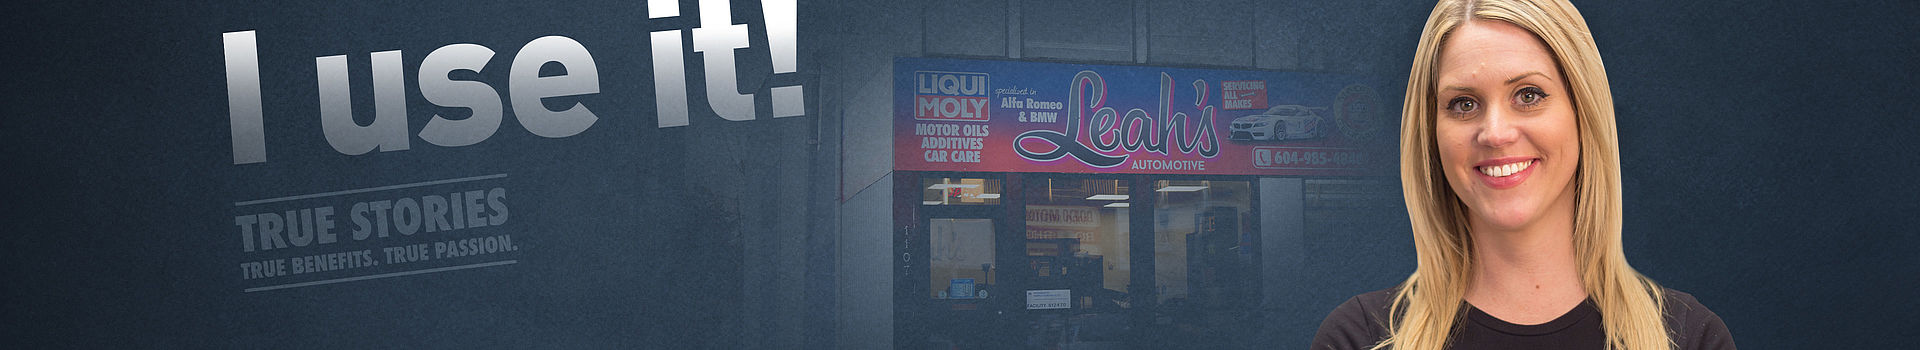 BMW specialist, workshop owner and LIQUI MOLY testimonial. Leah's Automotive